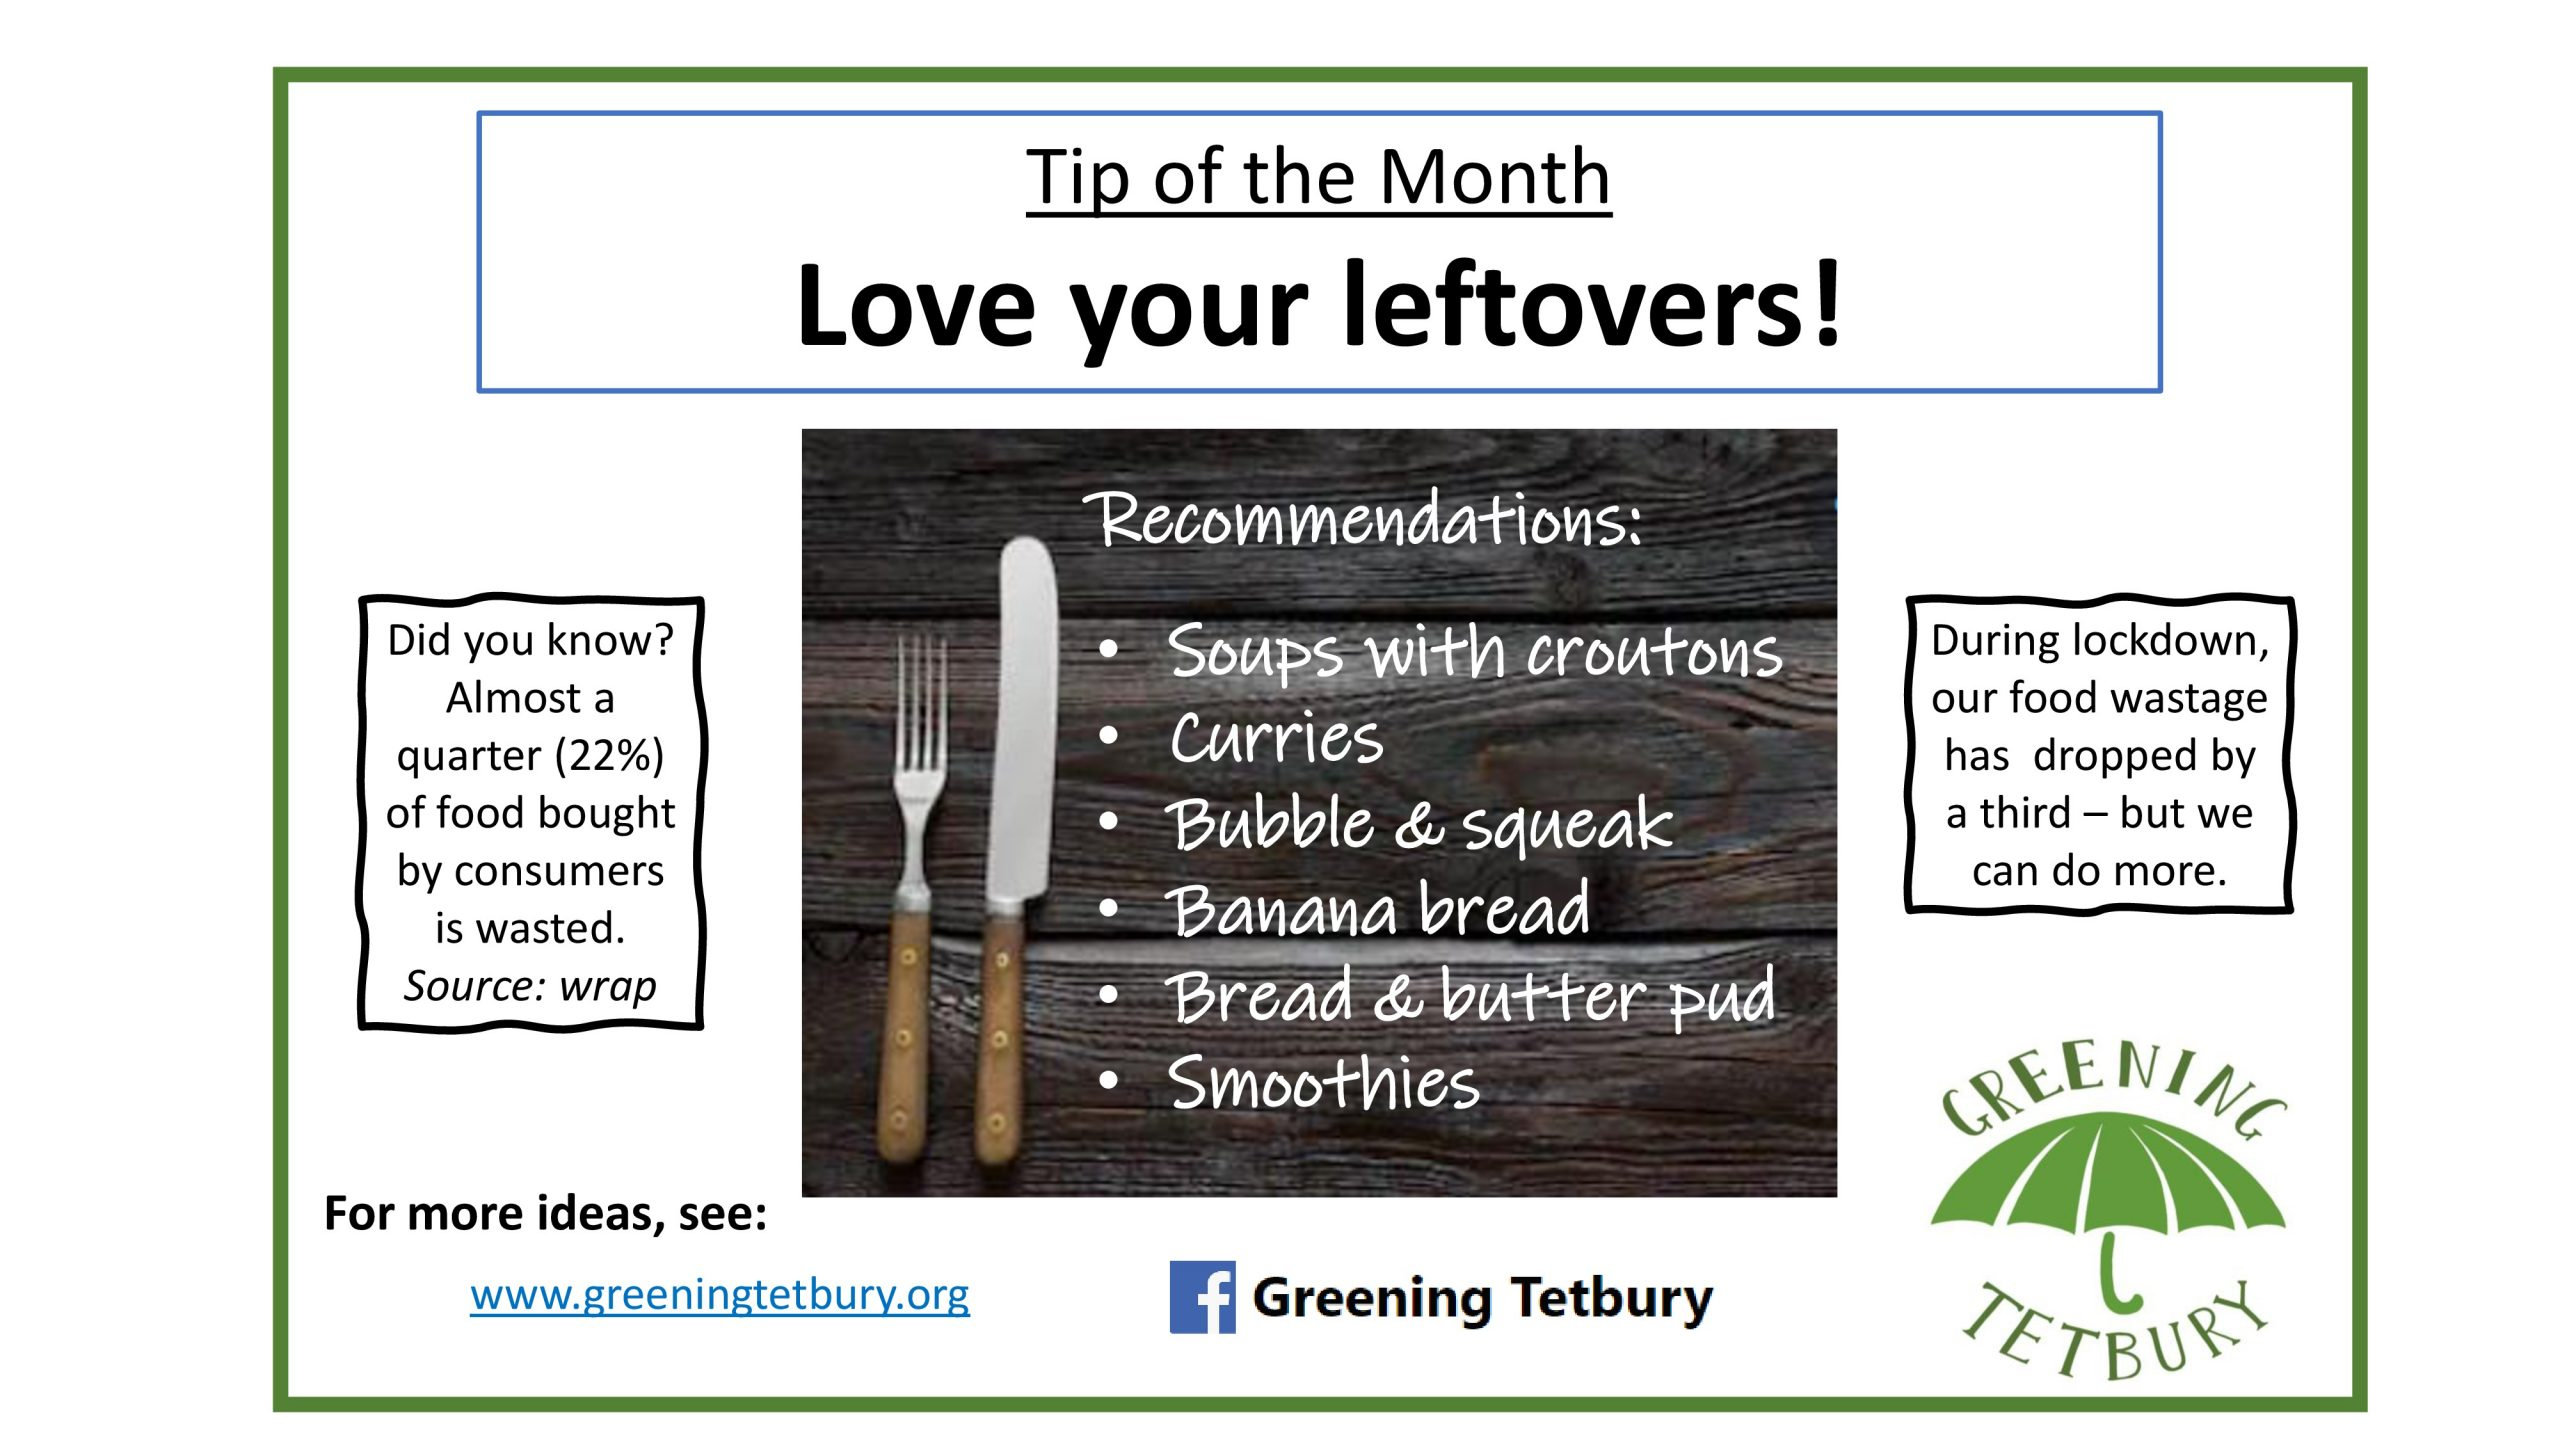 Greening Leftovers tip of the month november 20-page-0